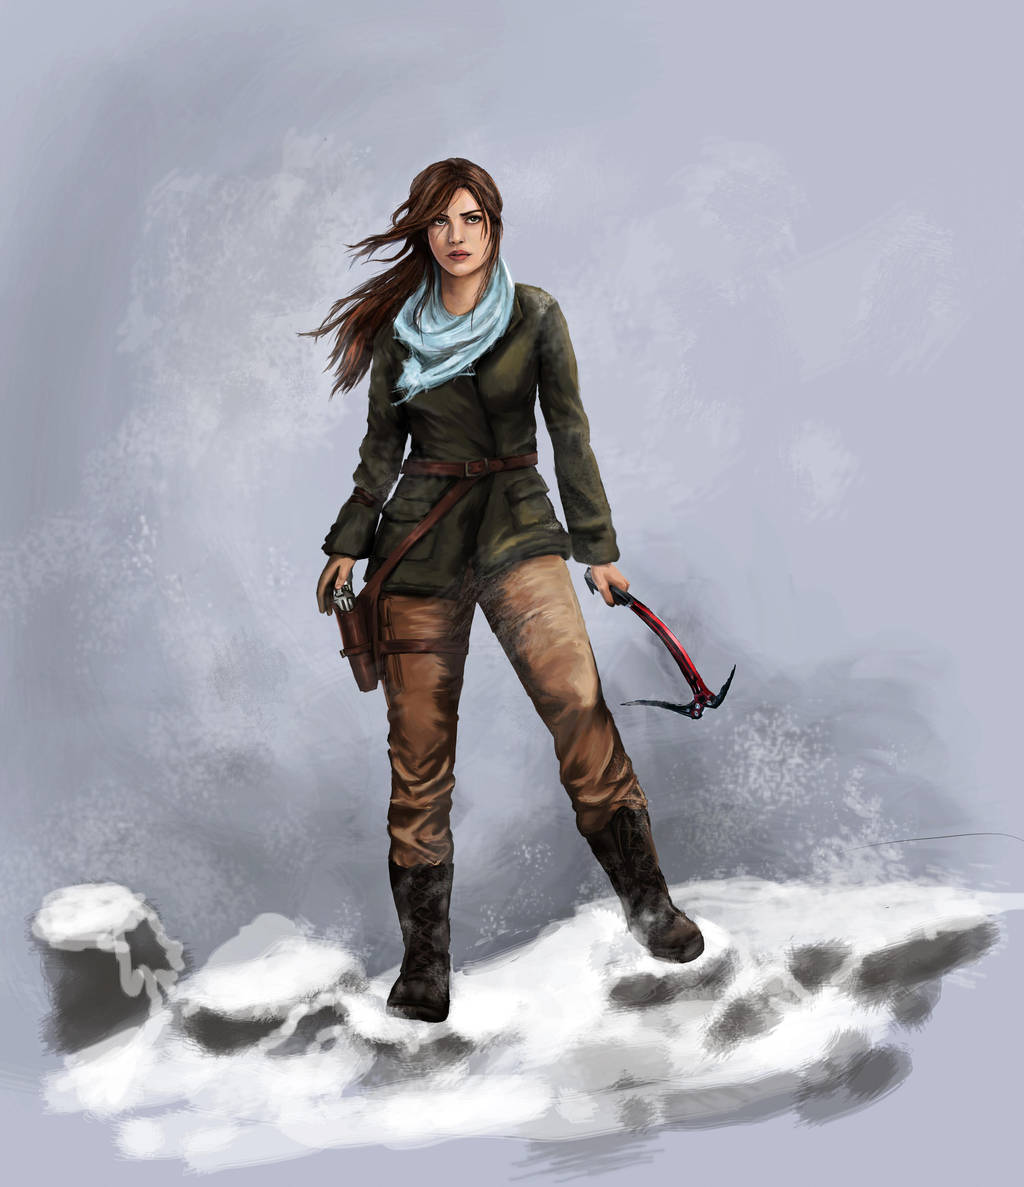 The Rise Of Tomb Raider Wallpaper: Rise Of The Tomb Raider By Pencilsketches On DeviantArt